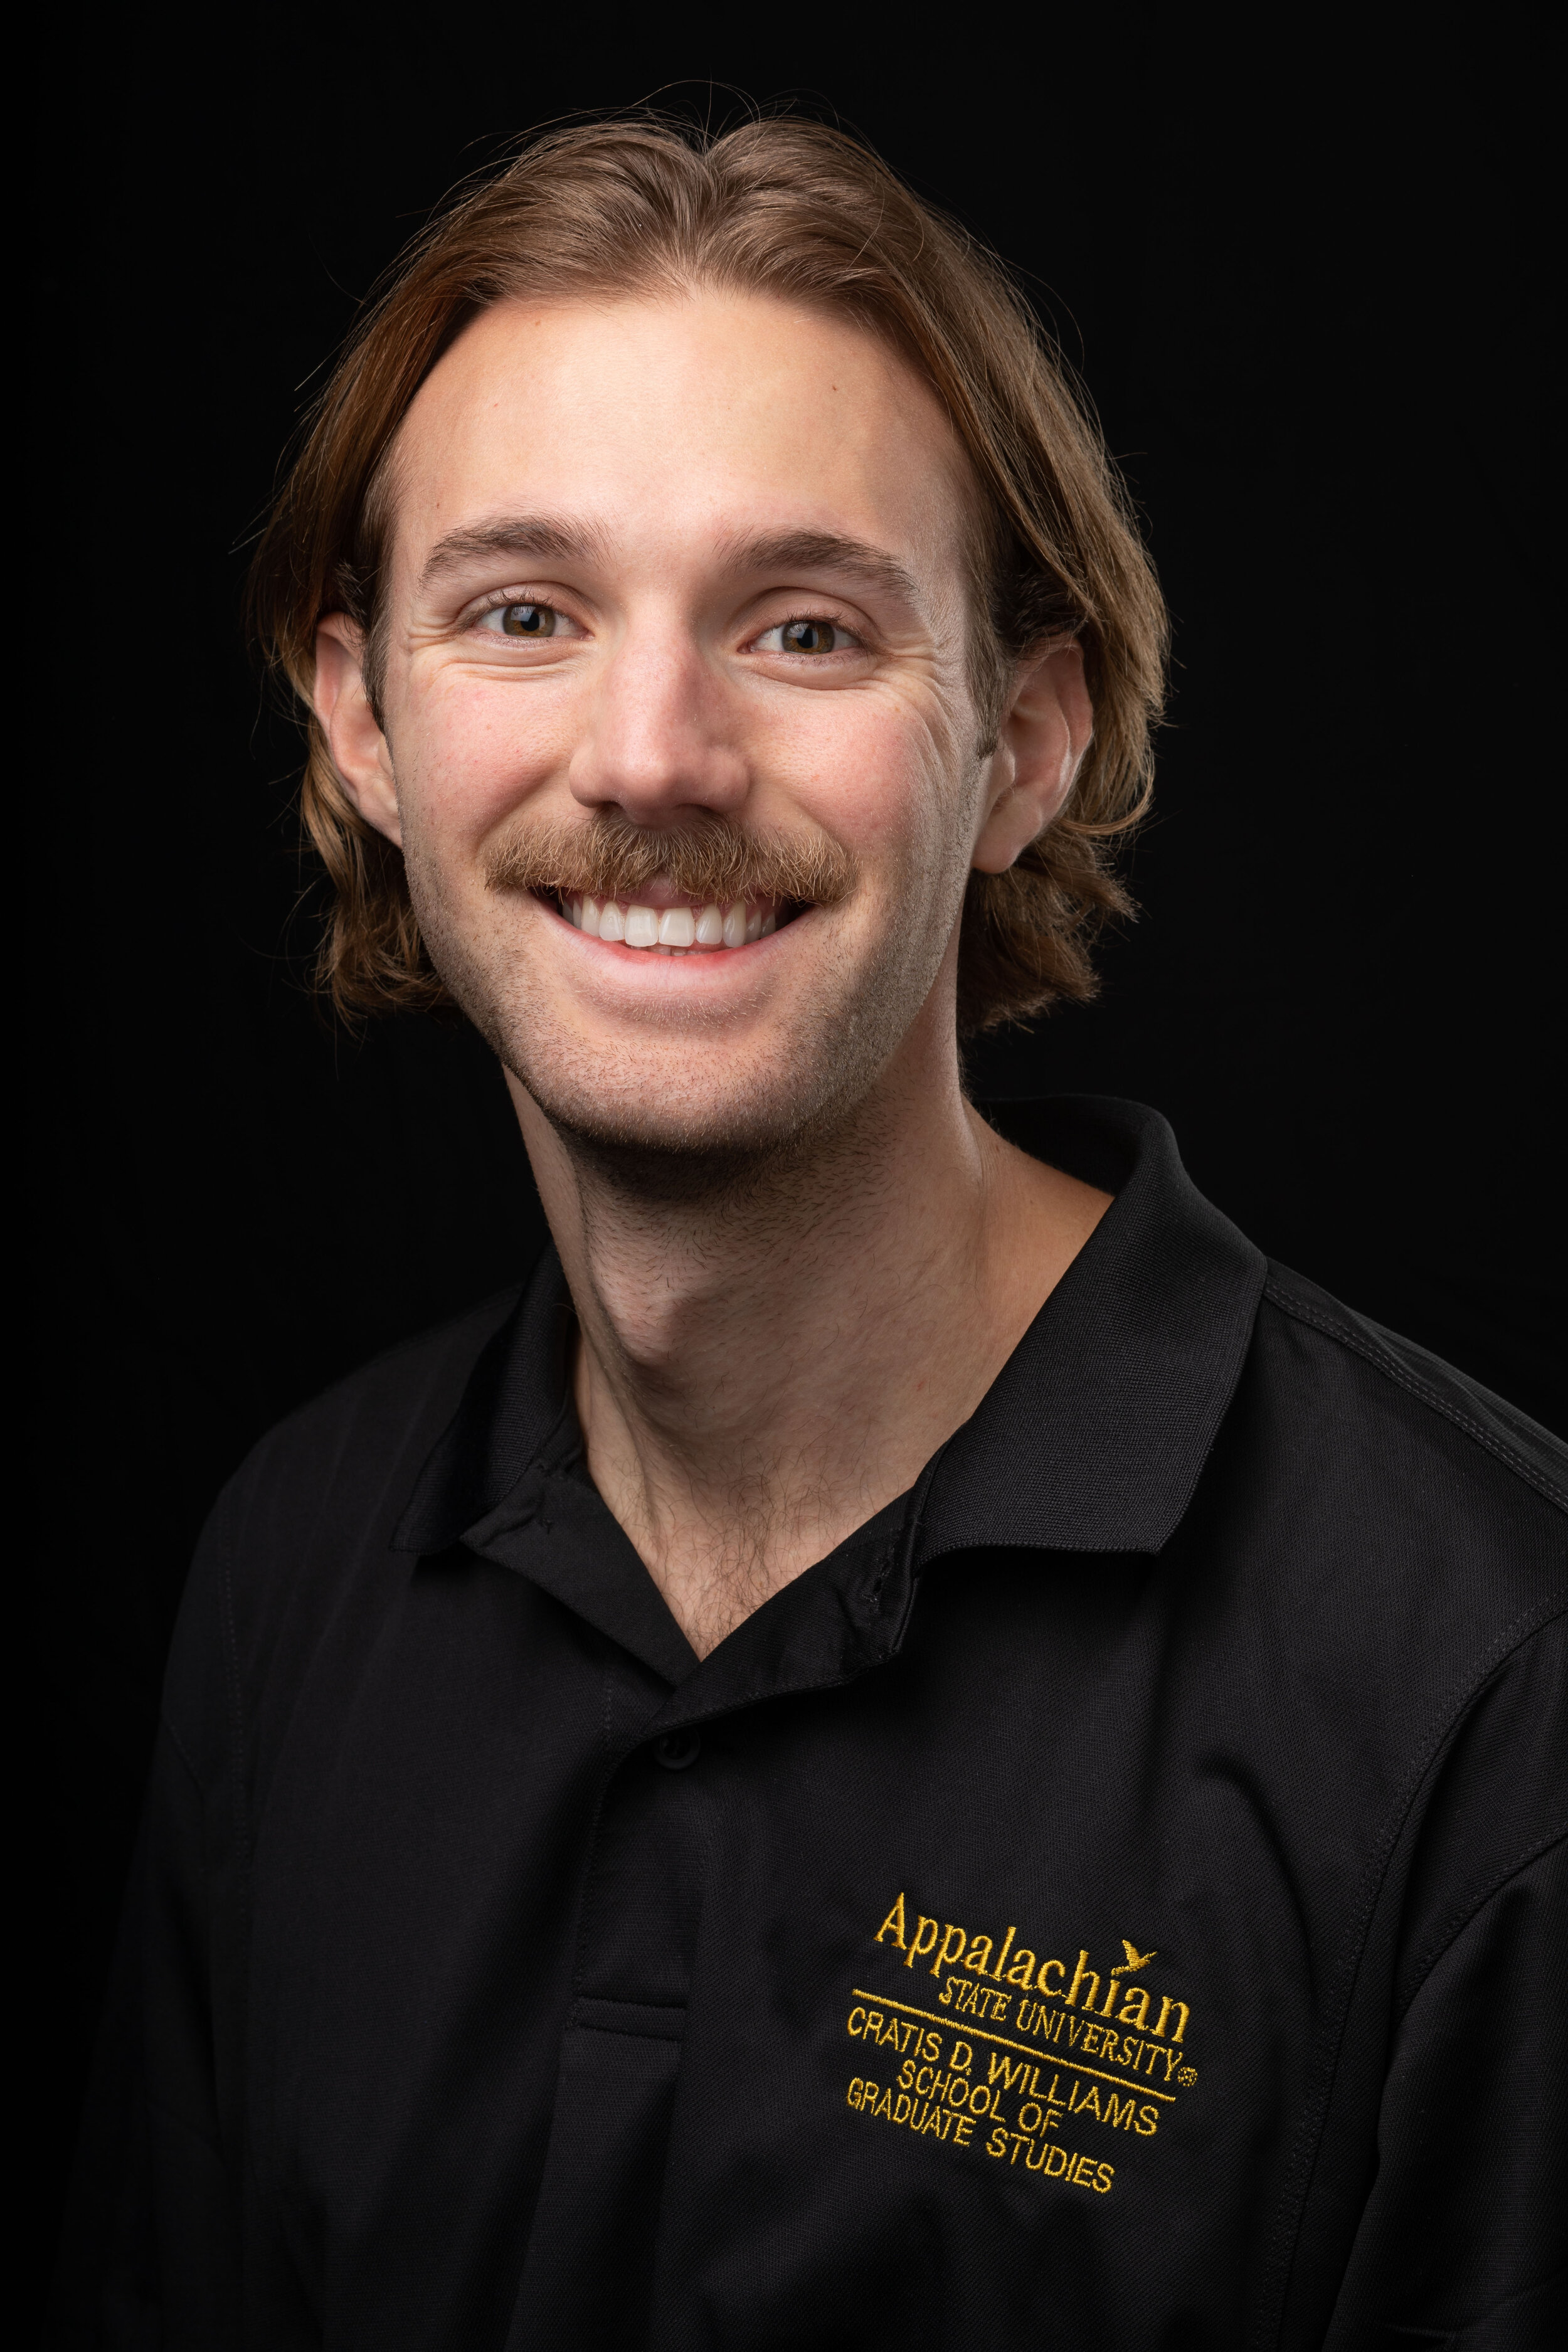 Jimmy Wyngaarden   I'm a second-year master's student in the Experimental Psychology program interested in judgment and decision-making, morality, and mind perception.